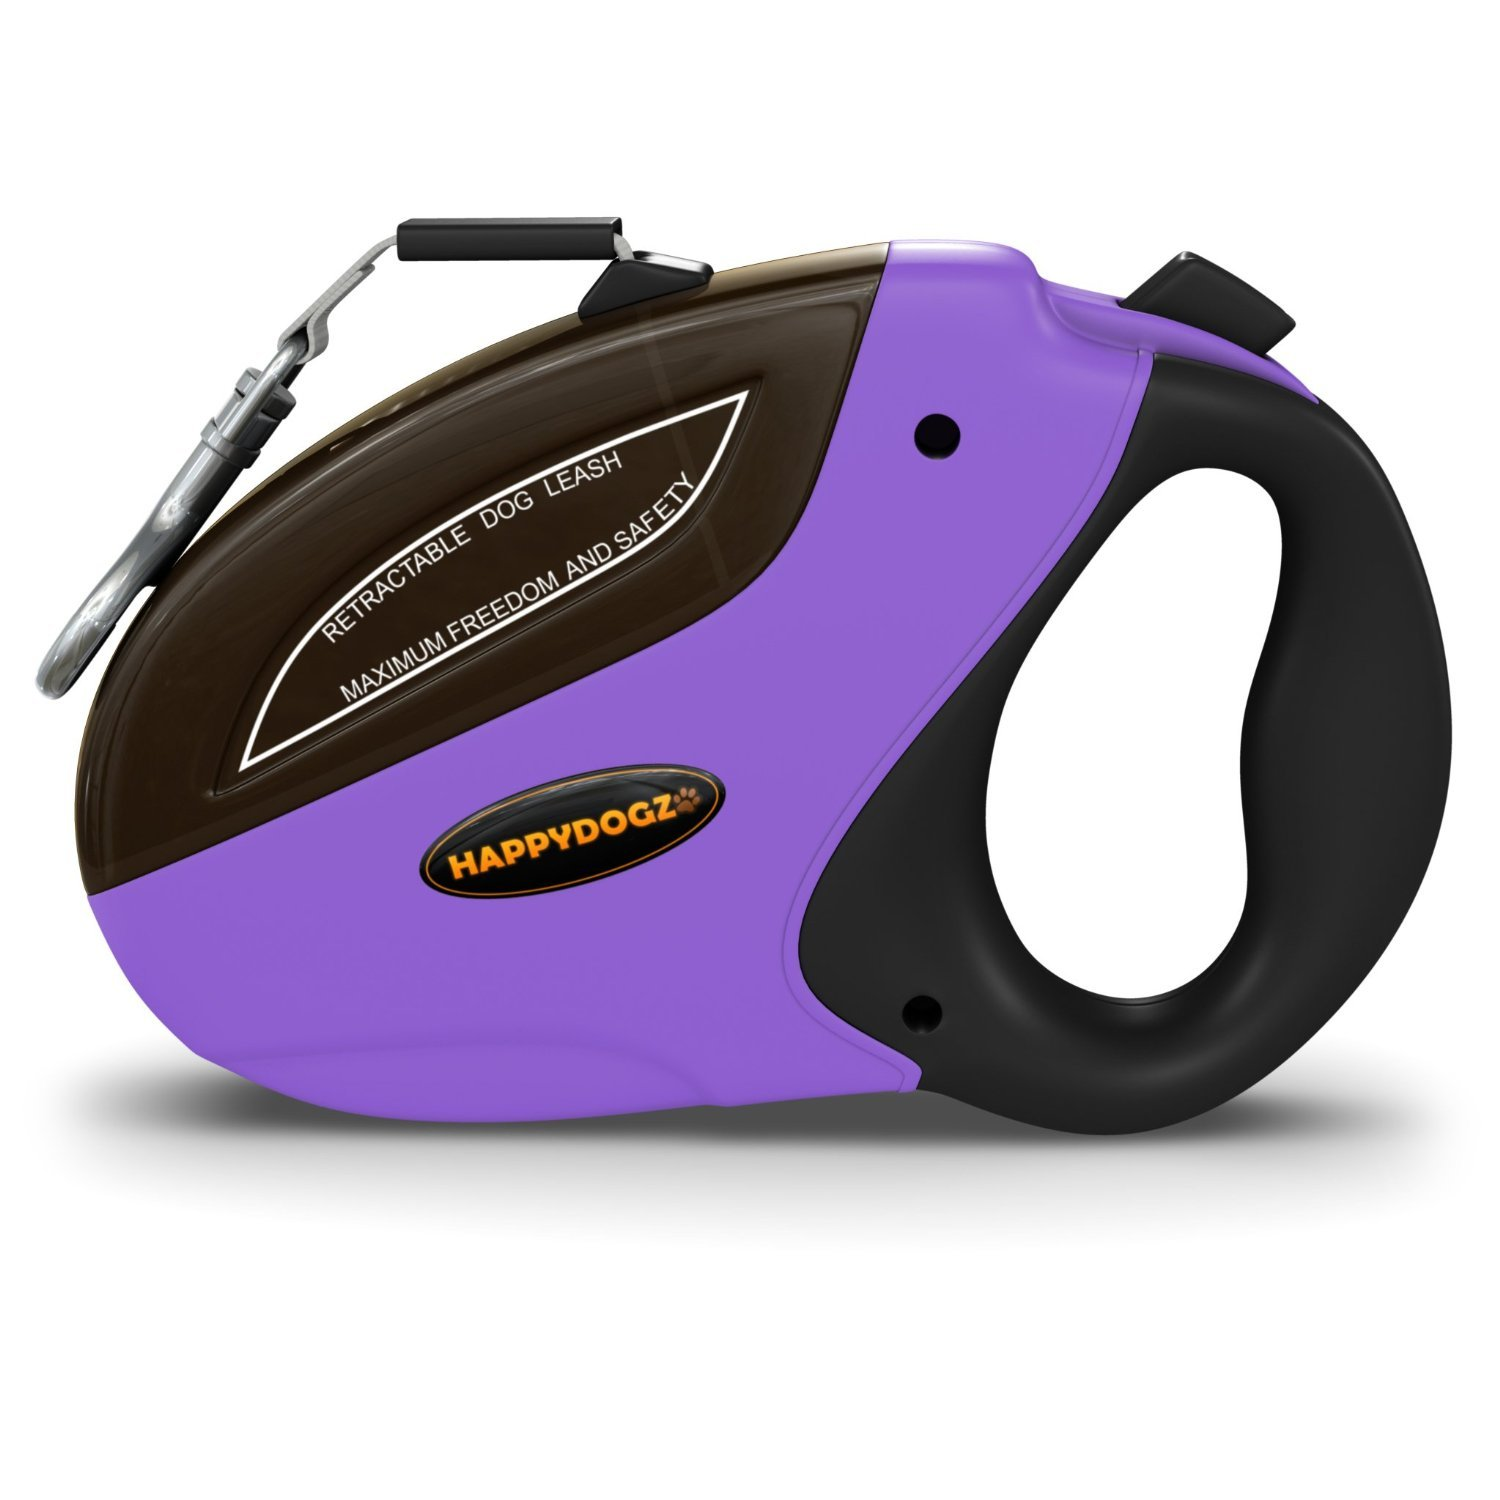 Security Pro Retractable Dog Leash a 16 Foot Long Heavy Duty No Tangle Pet Lead with Instant Retraction for Small to Large Dogs, Purple